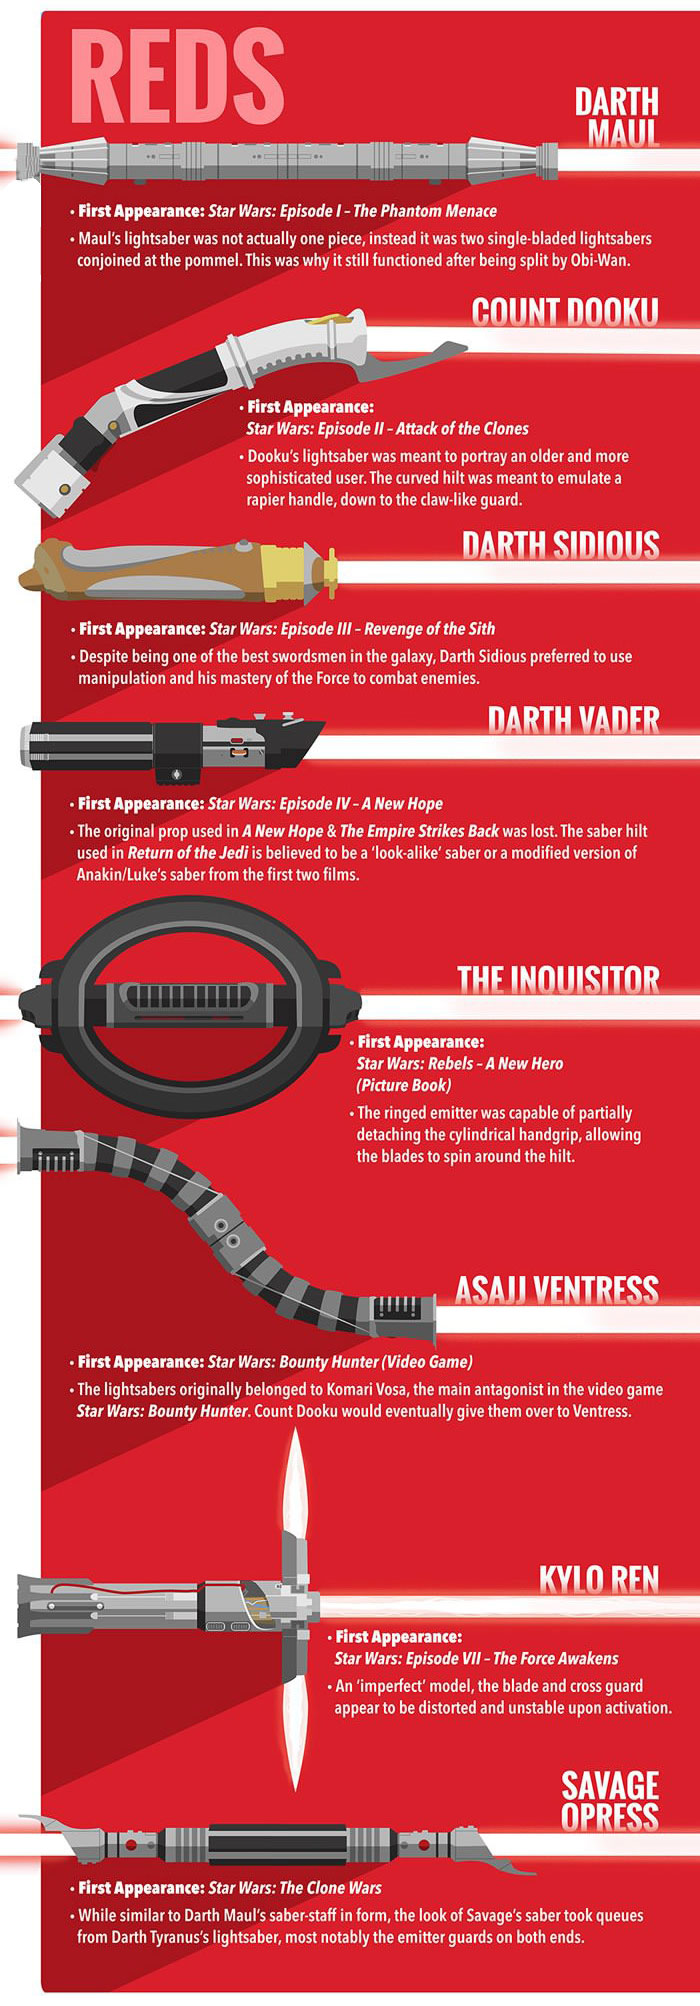 A Look At The Differences Between Jedi And Sith Lightsabers